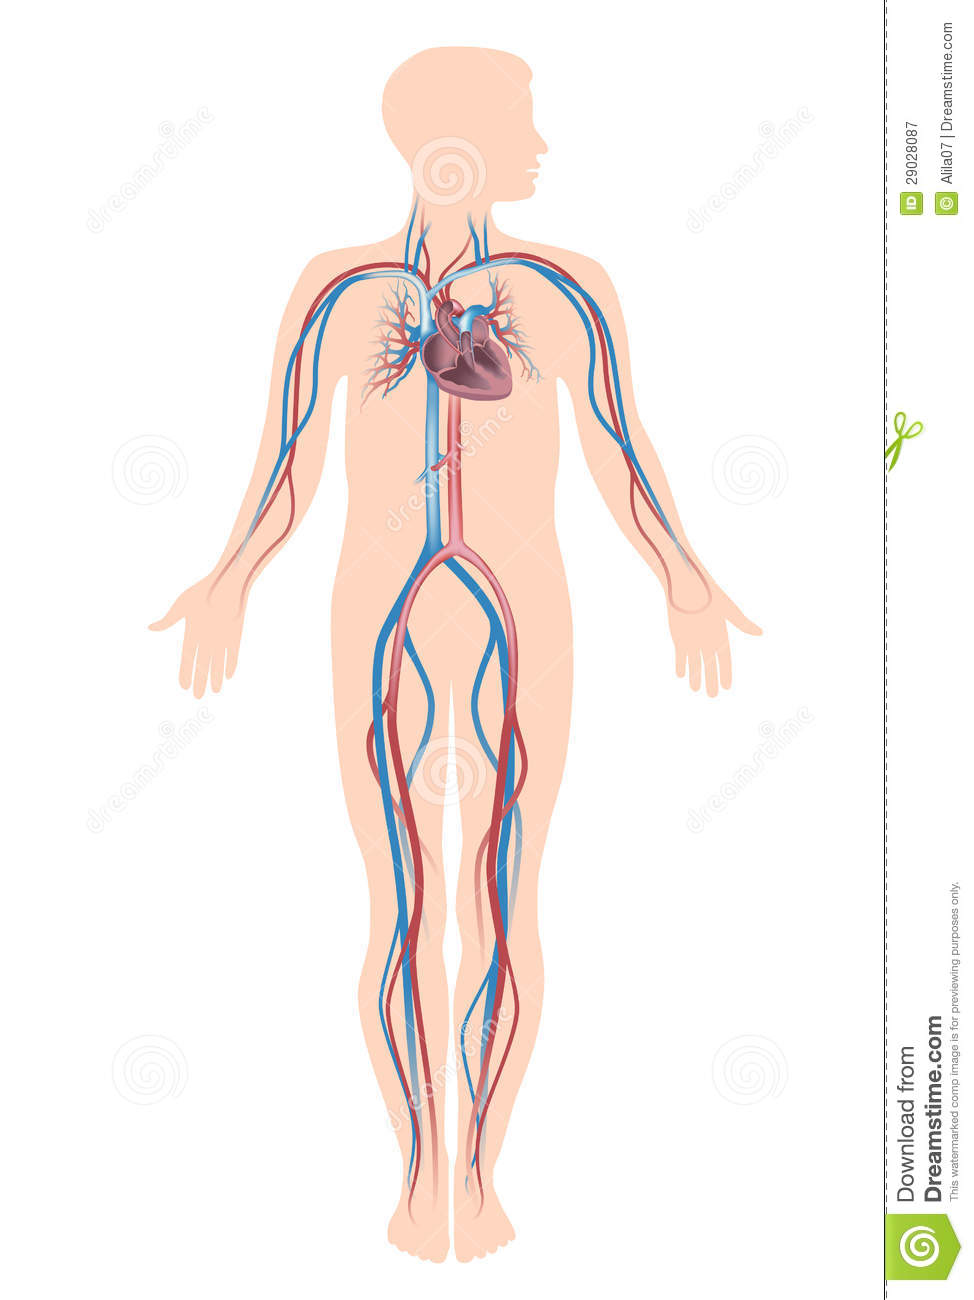 human vascular anatomy diagram trailer junction box wiring circulation system royalty free stock photography - image: 29028087